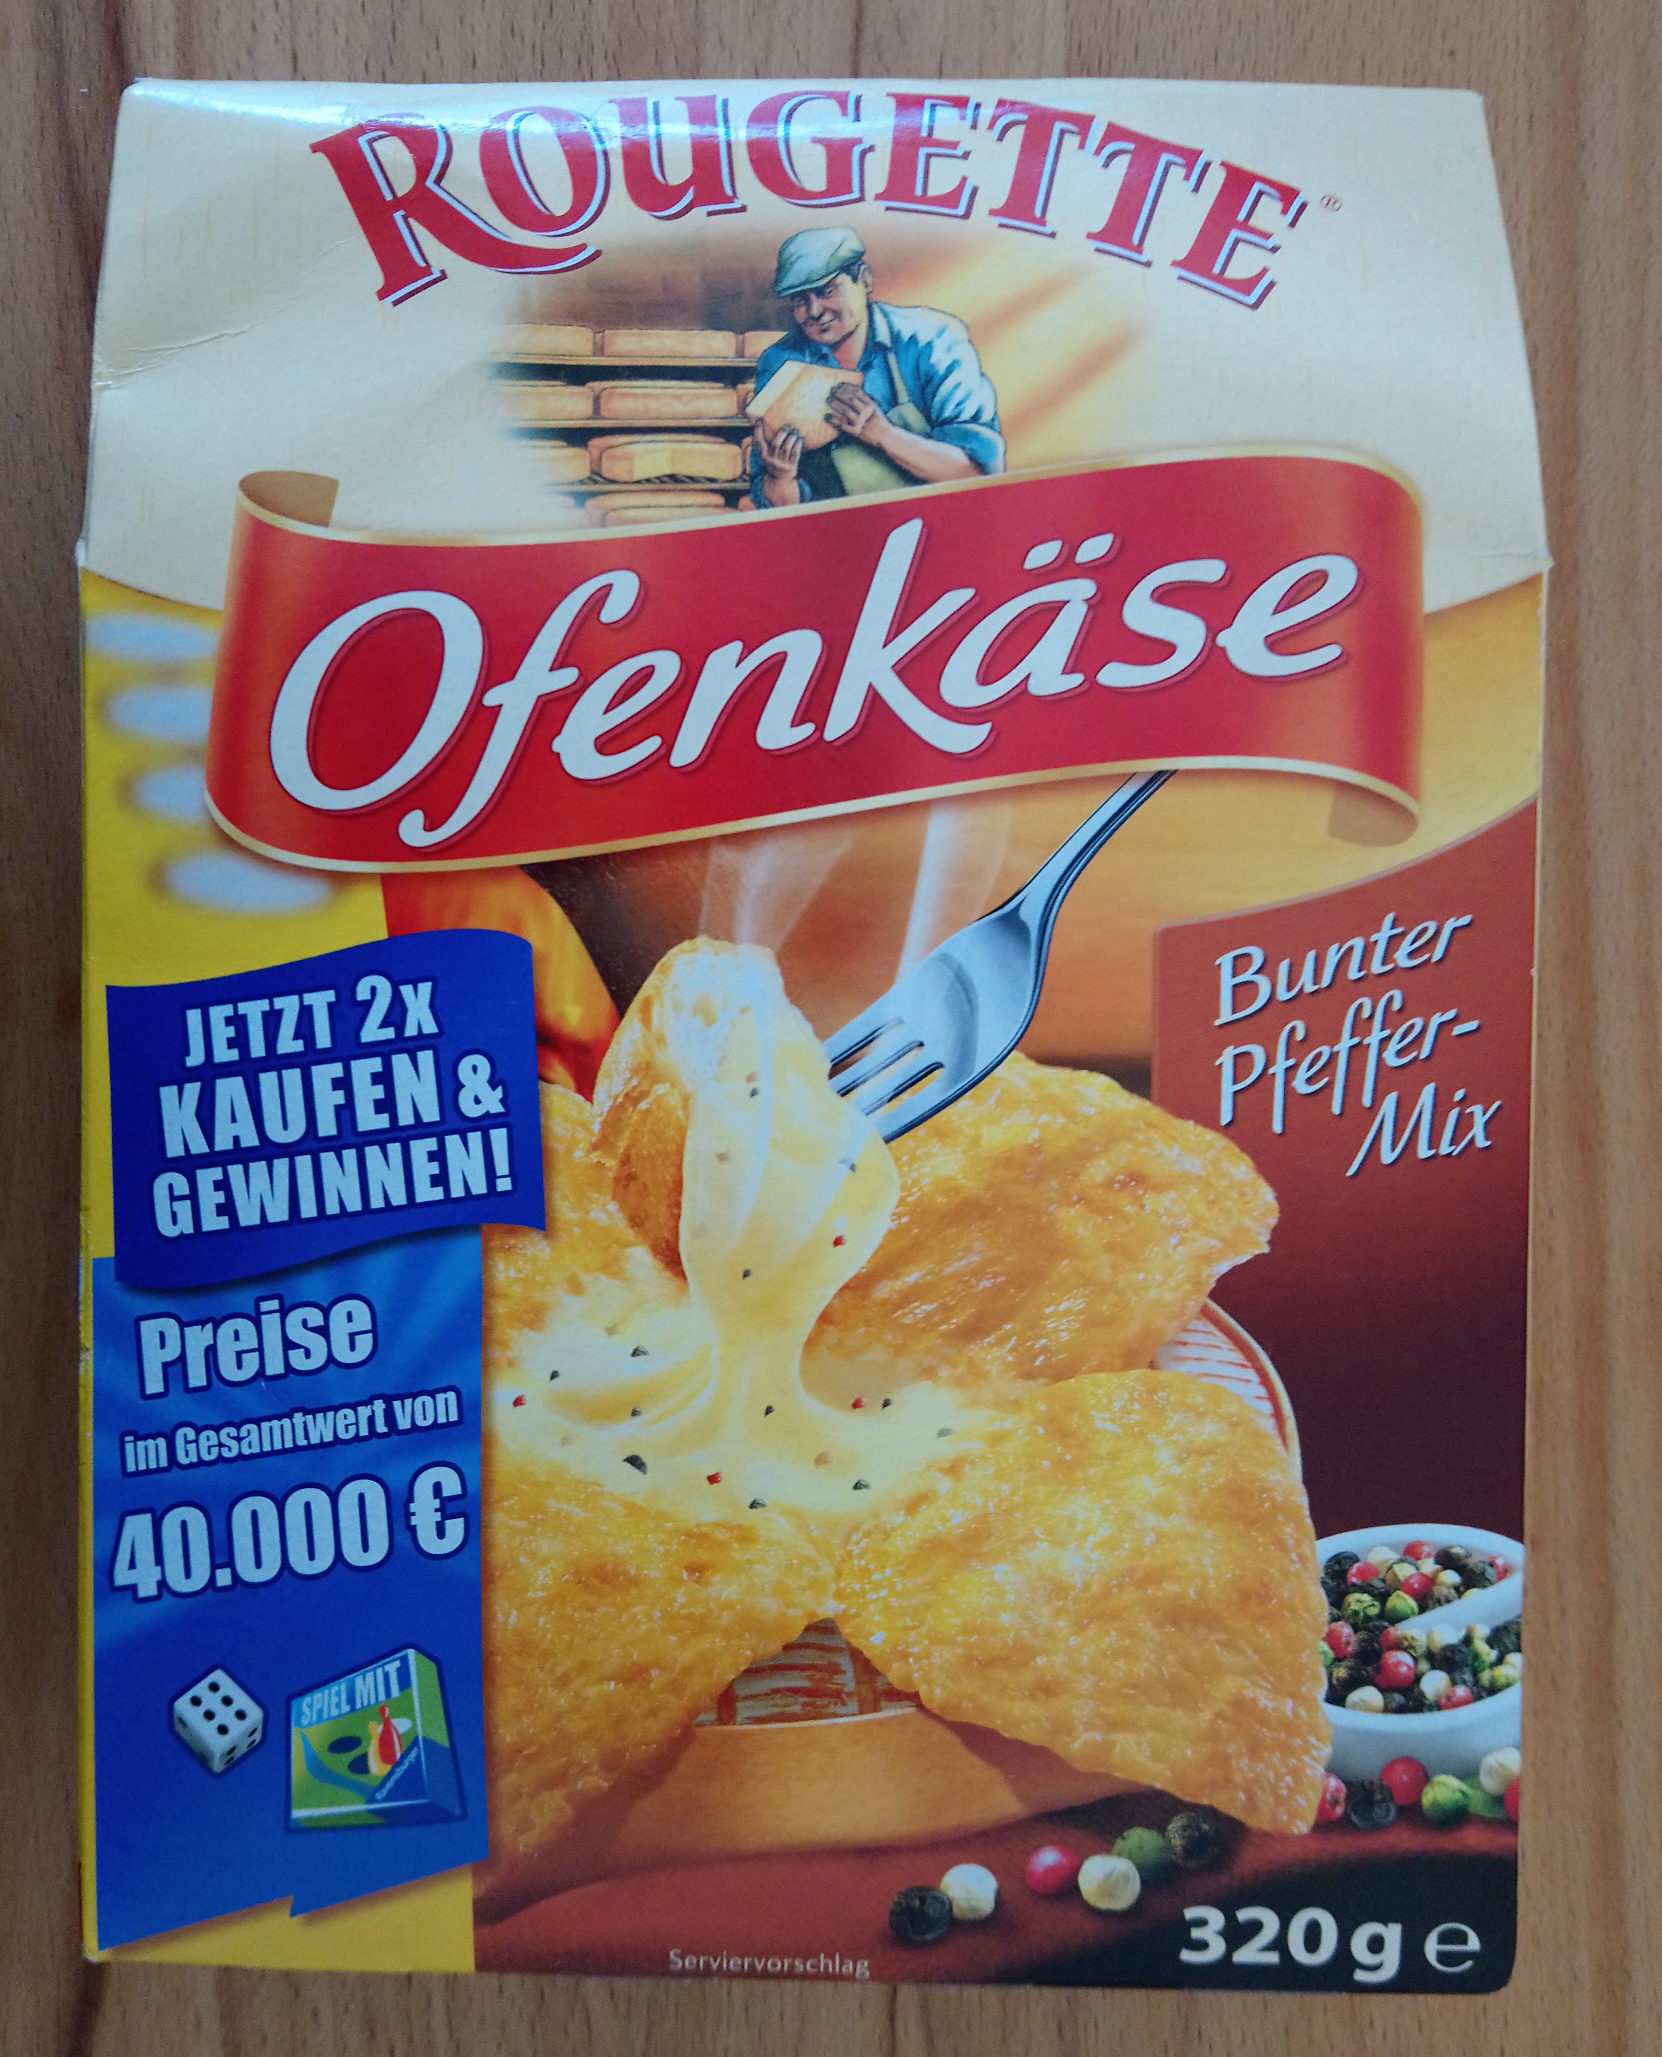 Ofenkäse Bunter Pfeffer-Mix - Product